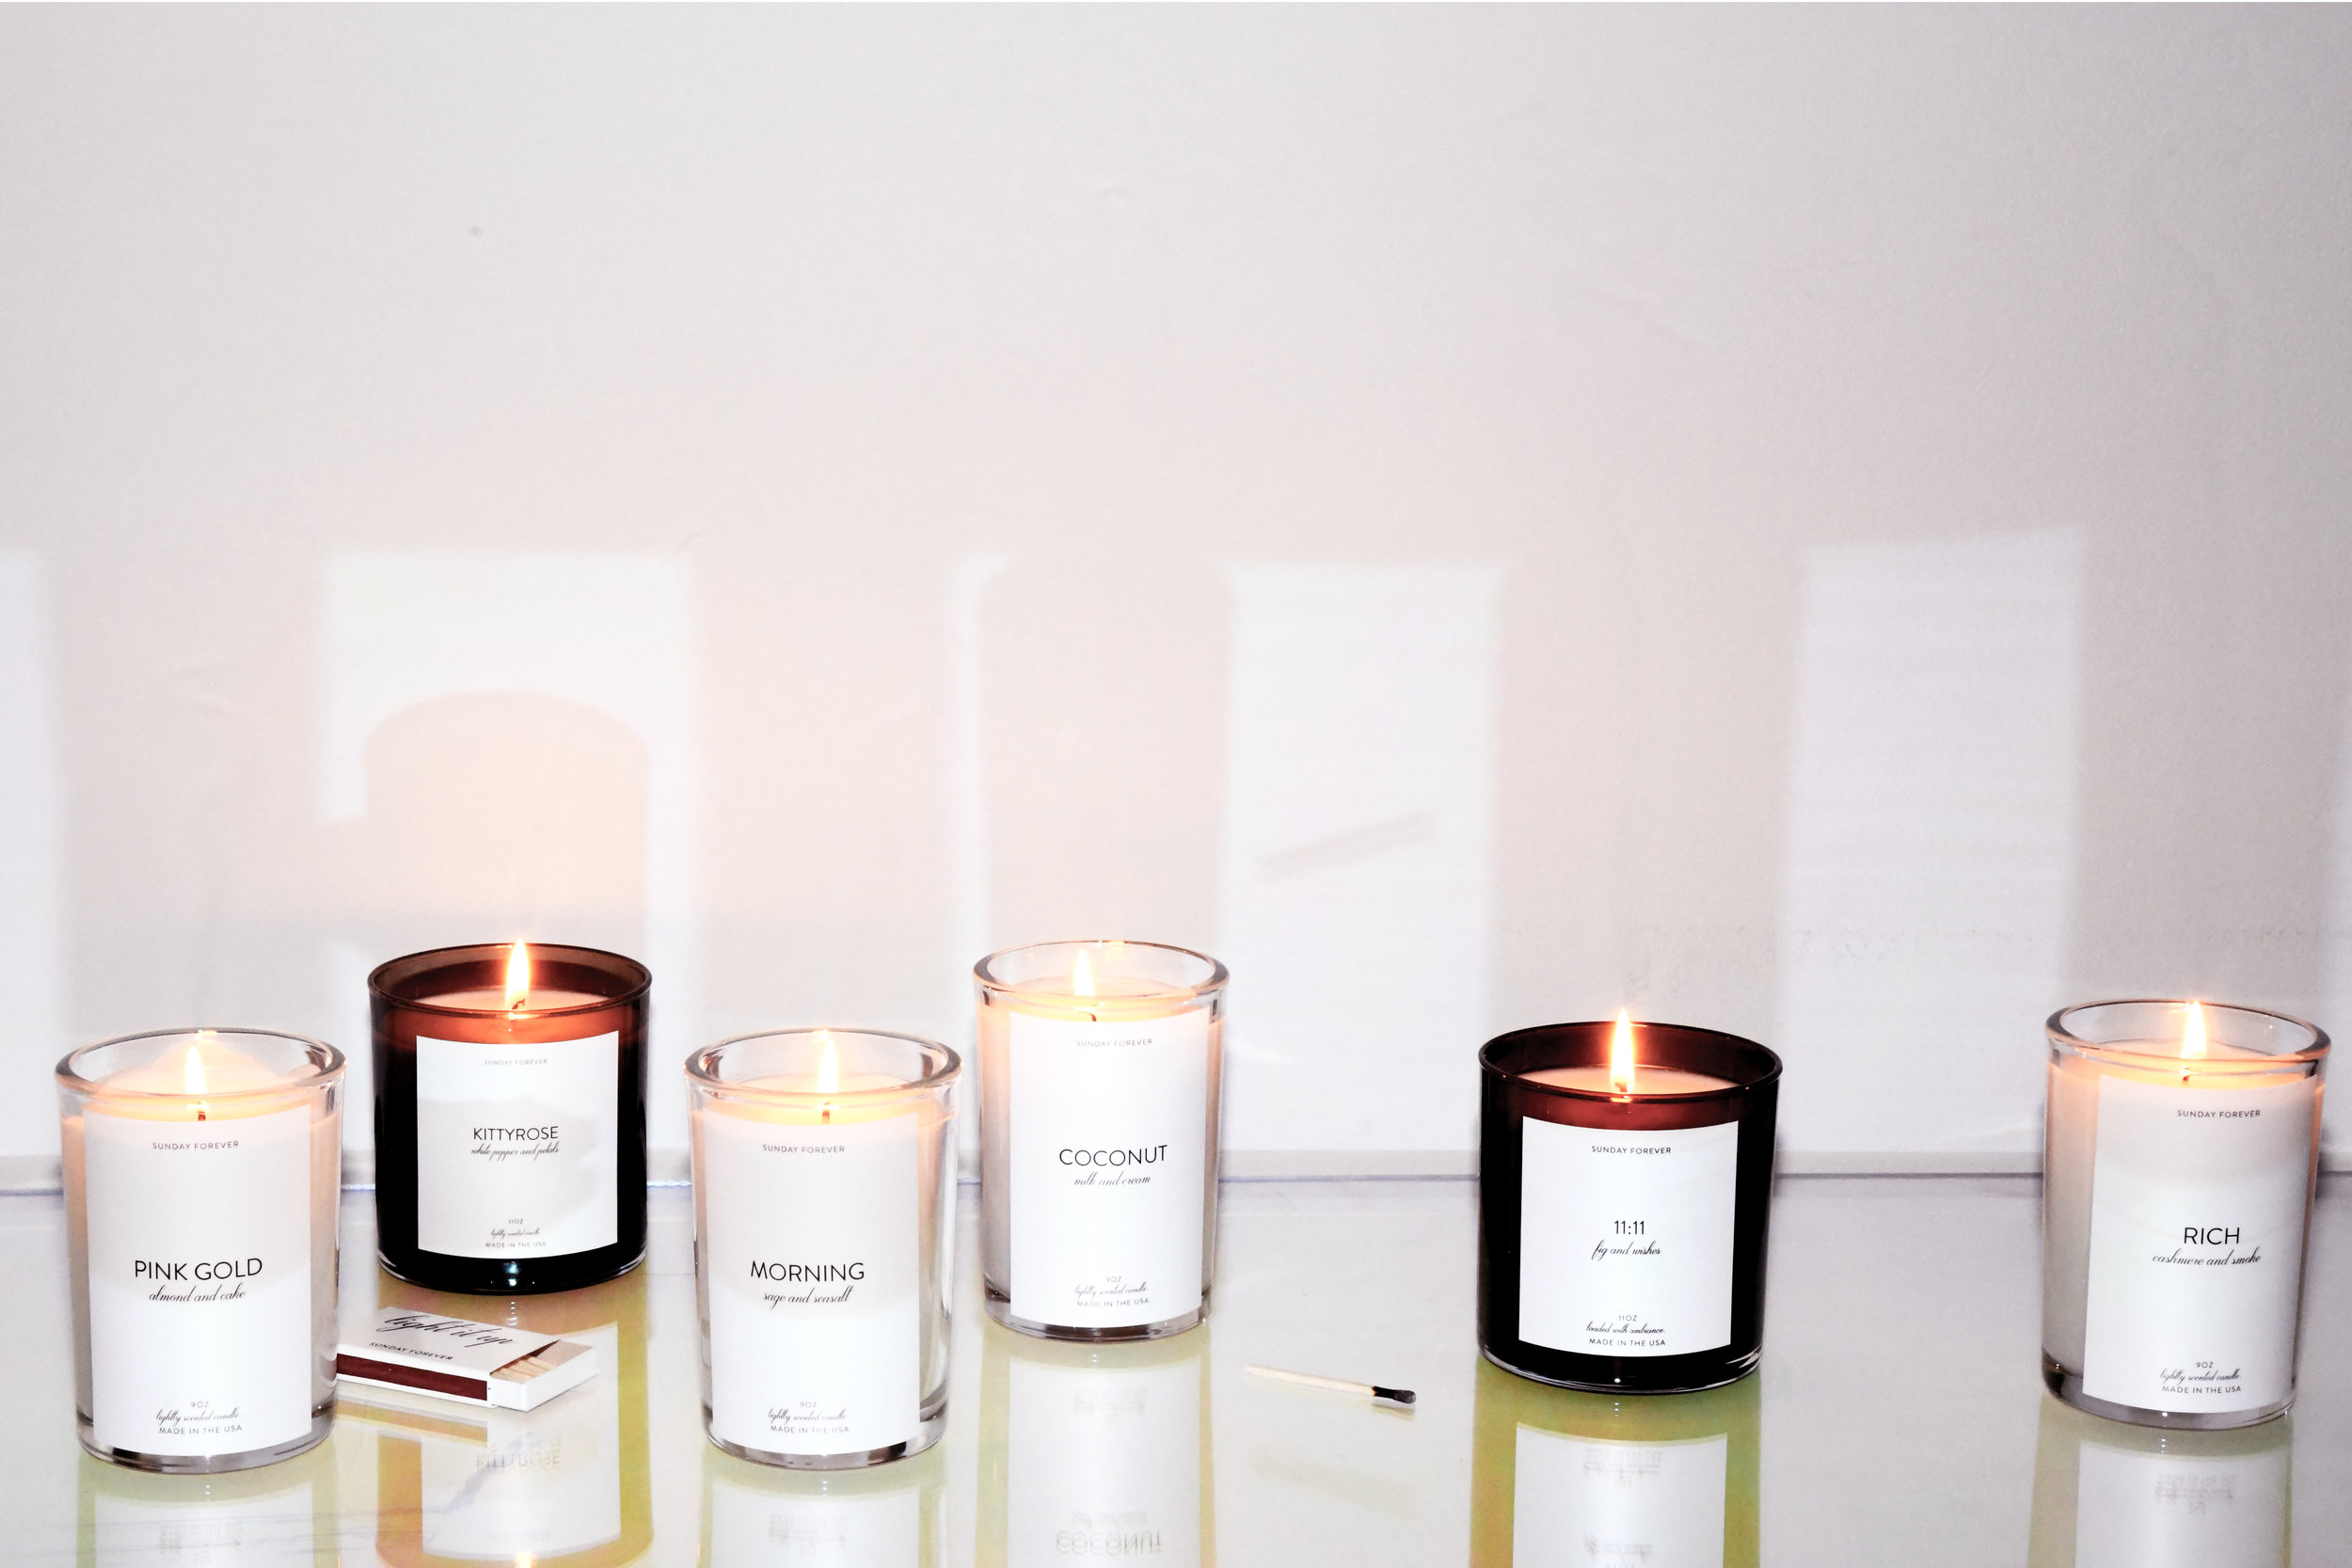 OUR CANDLES - WE USE ONLY 100% COTTON WICKS AND A HIGH QUALITY COCONUT AND SOY BLEND WAX FOR A CLEAN, SLOW BURN.WE ALSO WORK WITH A MISSION BASED COMPANY OUT OF MASSACHUSETTS TO POUR AND HAND PACKAGE OUR CANDLES. WE CHOSE THIS PARTICULAR MANUFACTURER NOT ONLY BECAUSE OF THEIR HIGH QUALITY HAND-POURED AND HAND LABELED PRODUCTION METHODS BUT ALSO BECAUSE THEY SUPPORT FEMALE REFUGEES AND ARTISANS THROUGH CANDLE MAKING, ALLOWING THEM TO EARN A FAIR LVING WAGE.